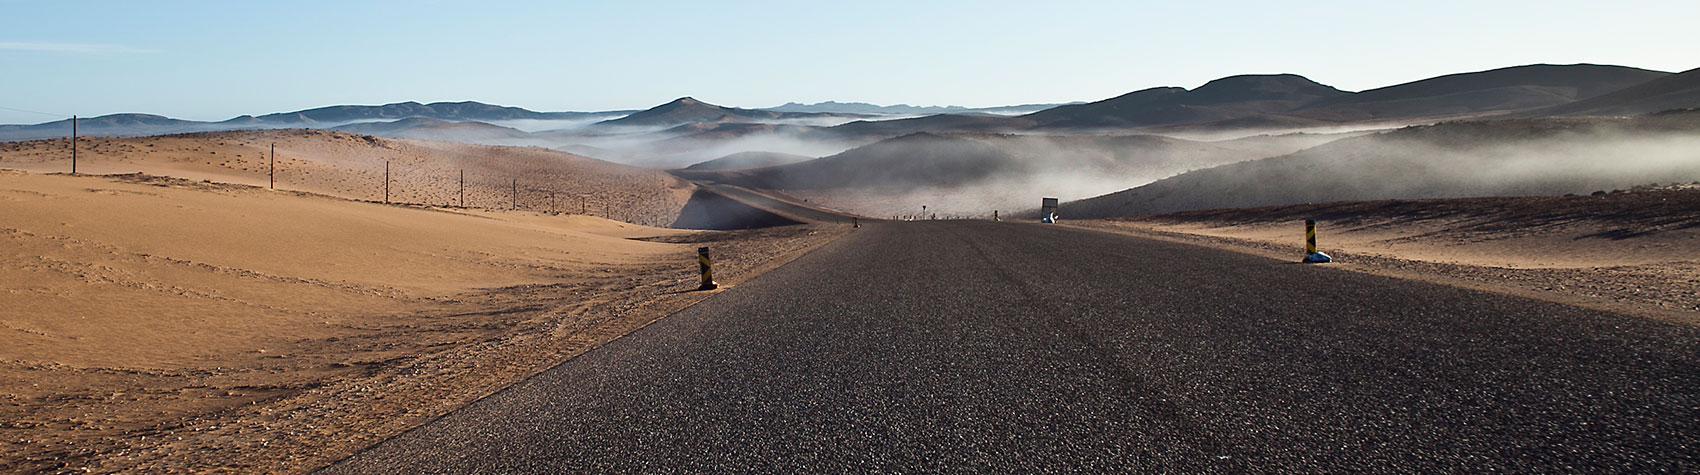 Responding to a challenge: the Namibian Main Road 118 Upgrade